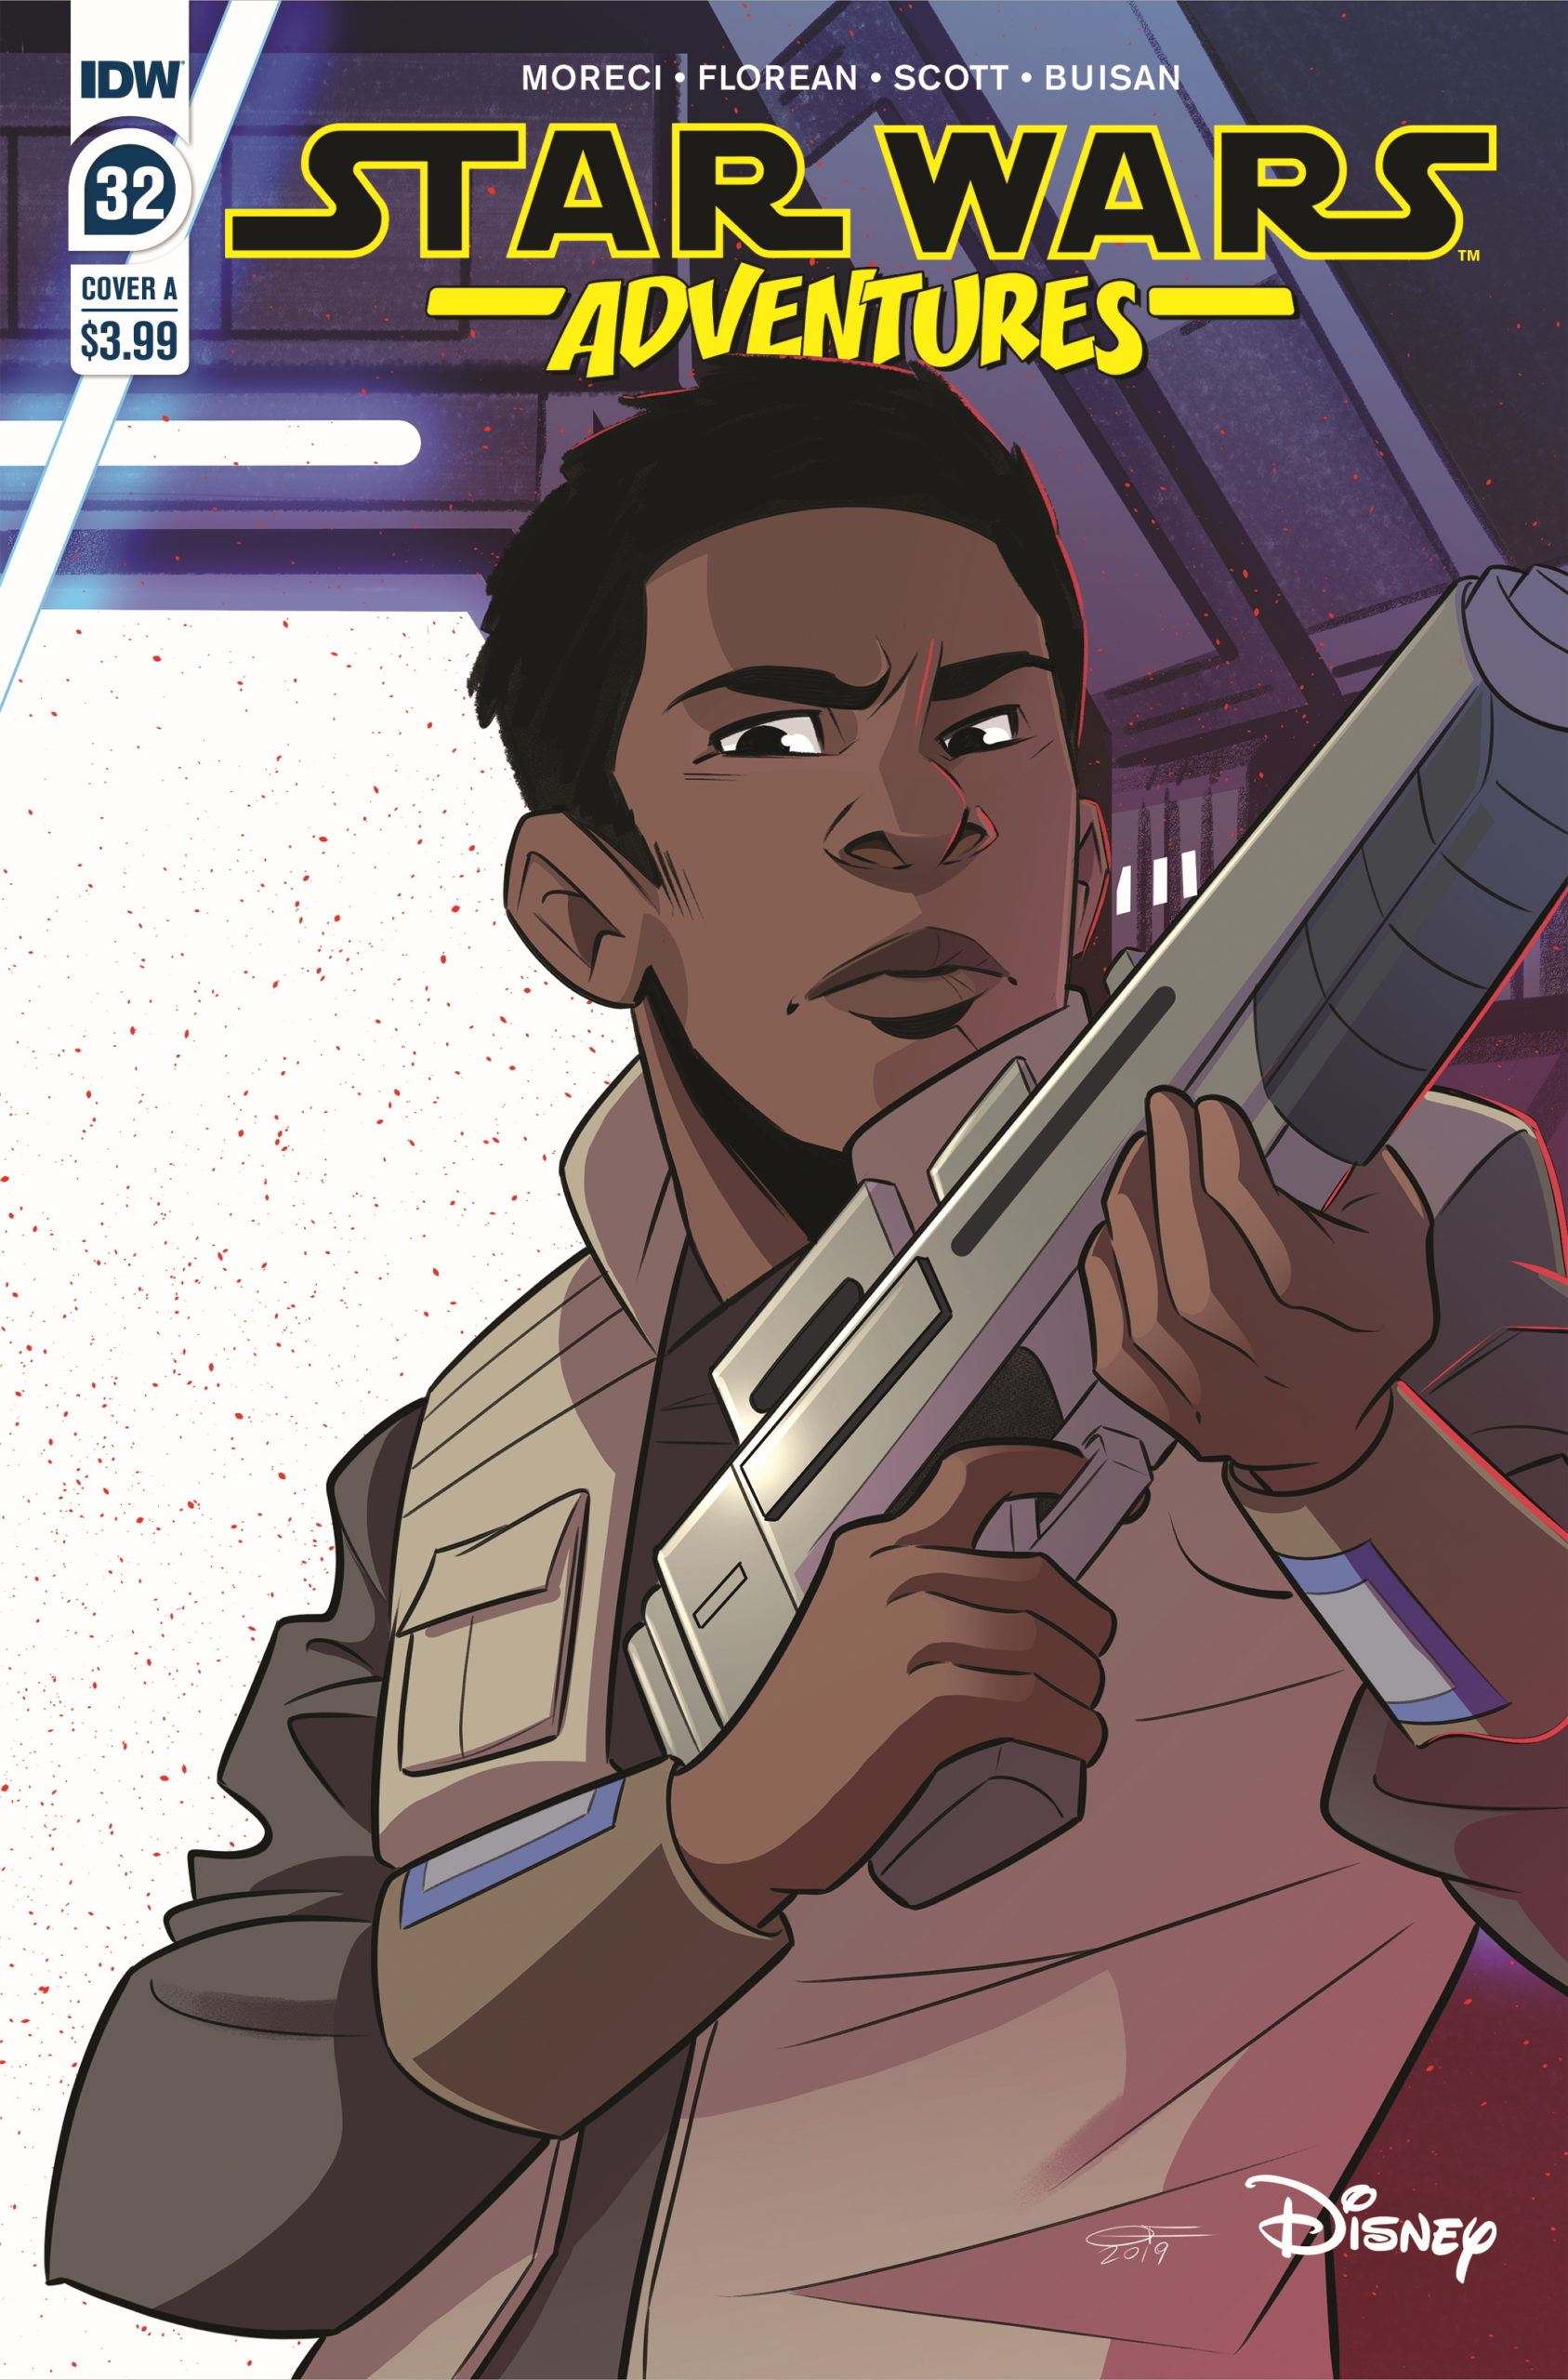 Star Wars Adventures #32 (11.03.2020)